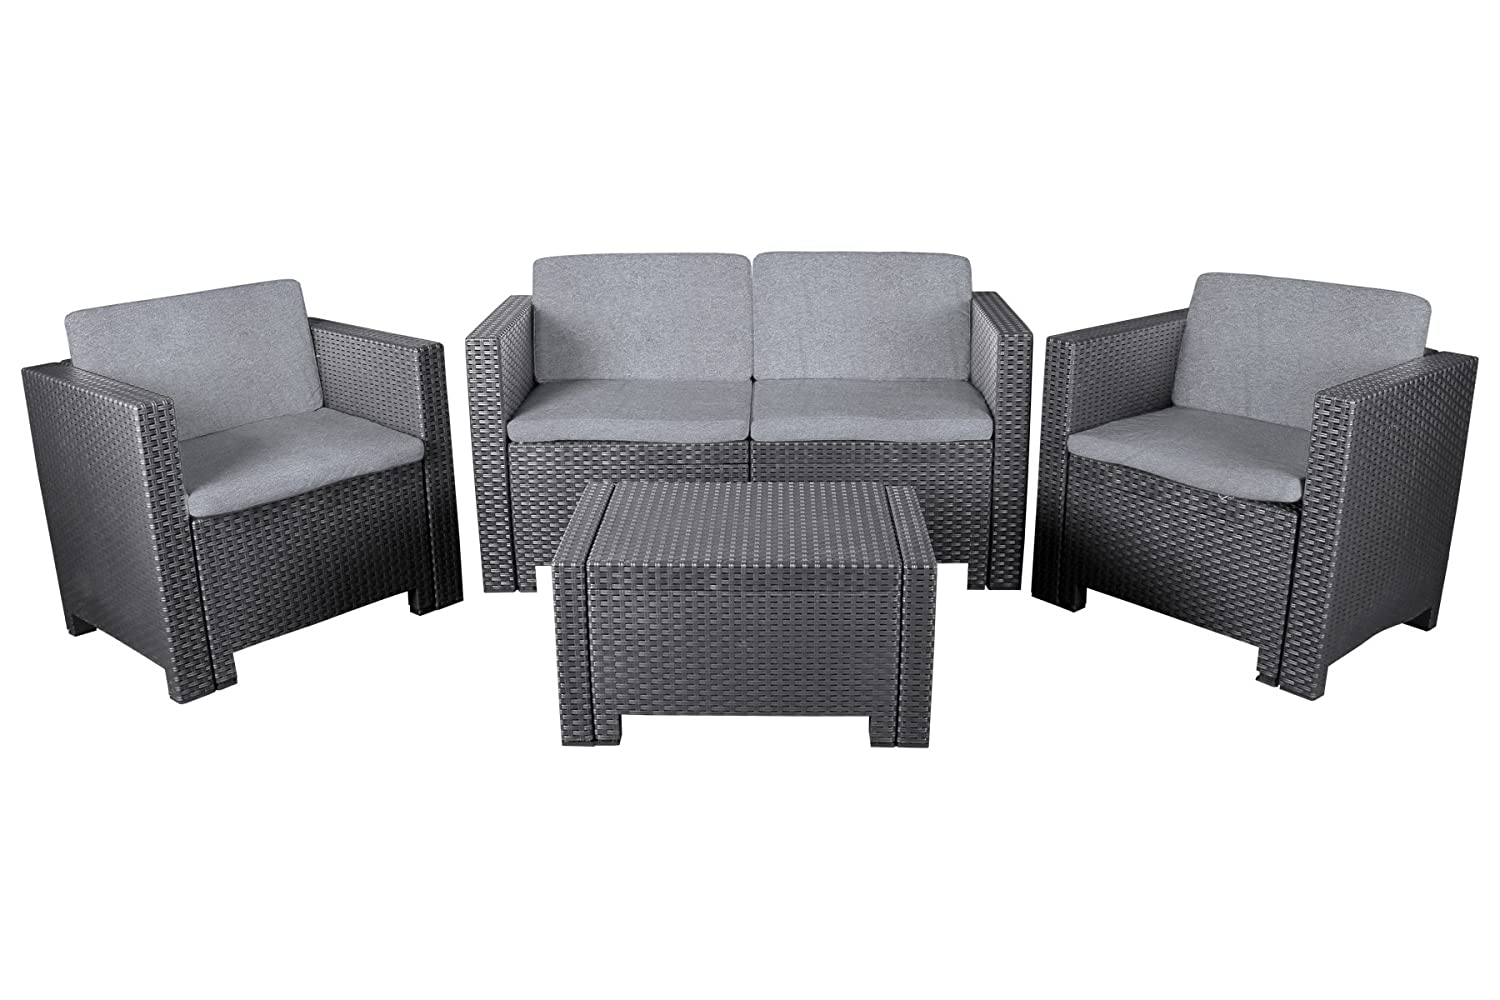 Allibert Lounge Sessel Allibert Lounge Set Quotcannes Quot Modische Rattanoptik 4 Tlg